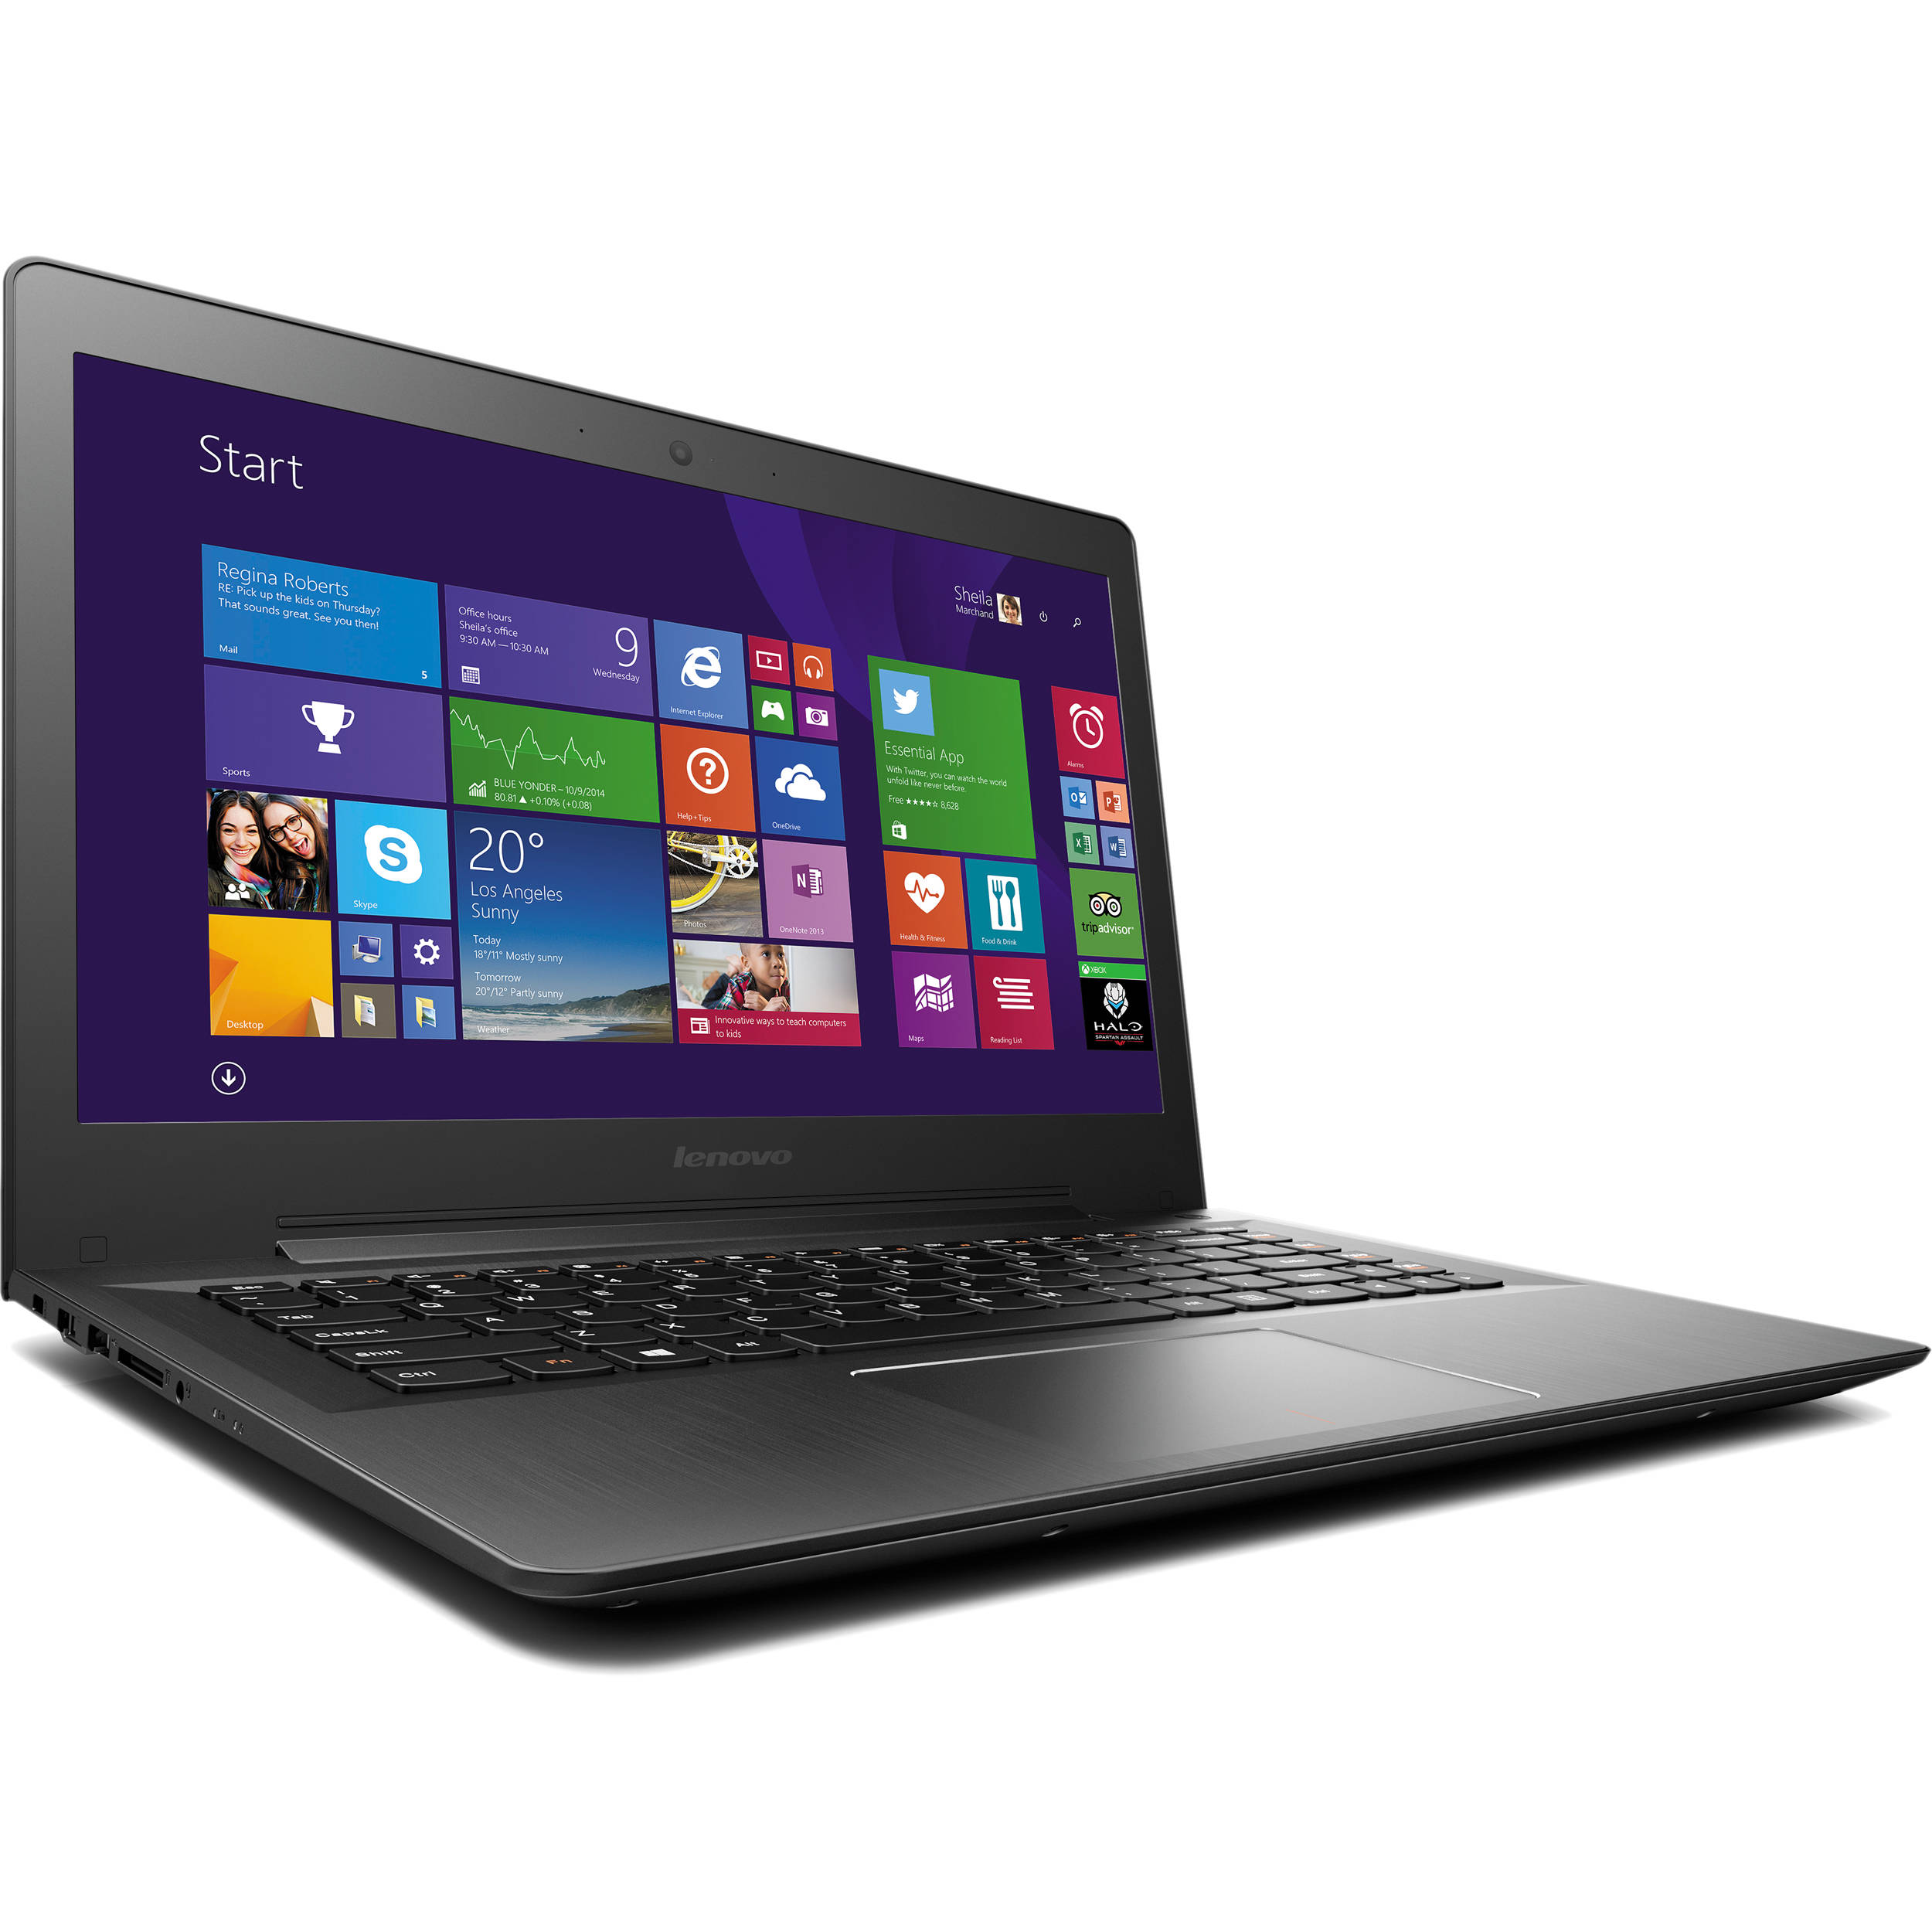 Lenovo G50 Laptop Wifi Drivers Free Download